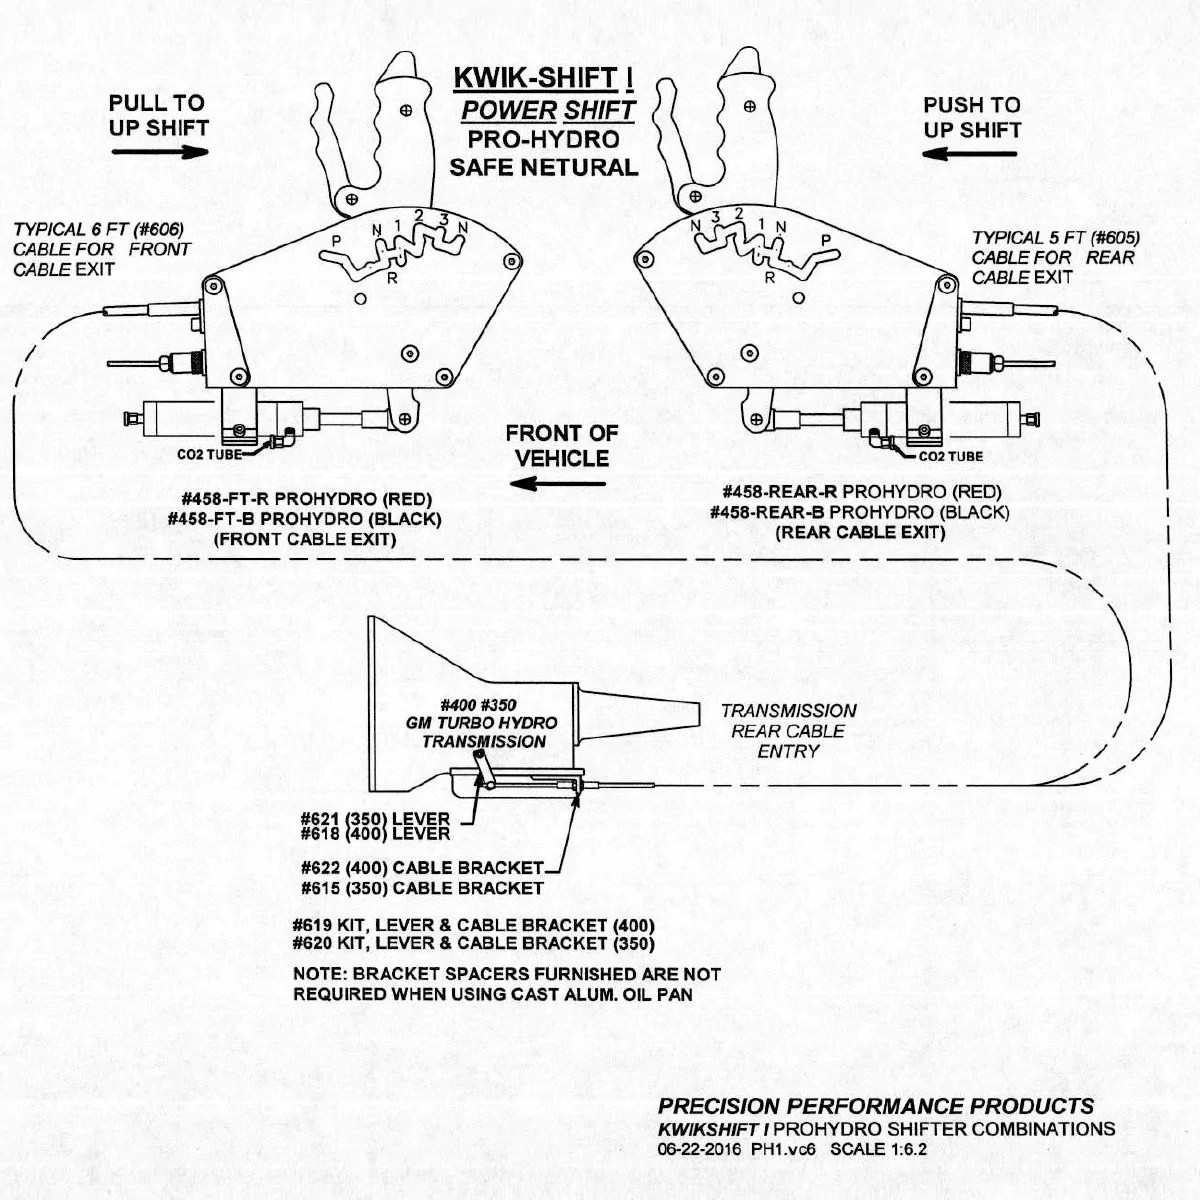 th400 sensor diagram wiring diagrams scematic th400 no reverse th400 sensor diagram [ 1200 x 1200 Pixel ]